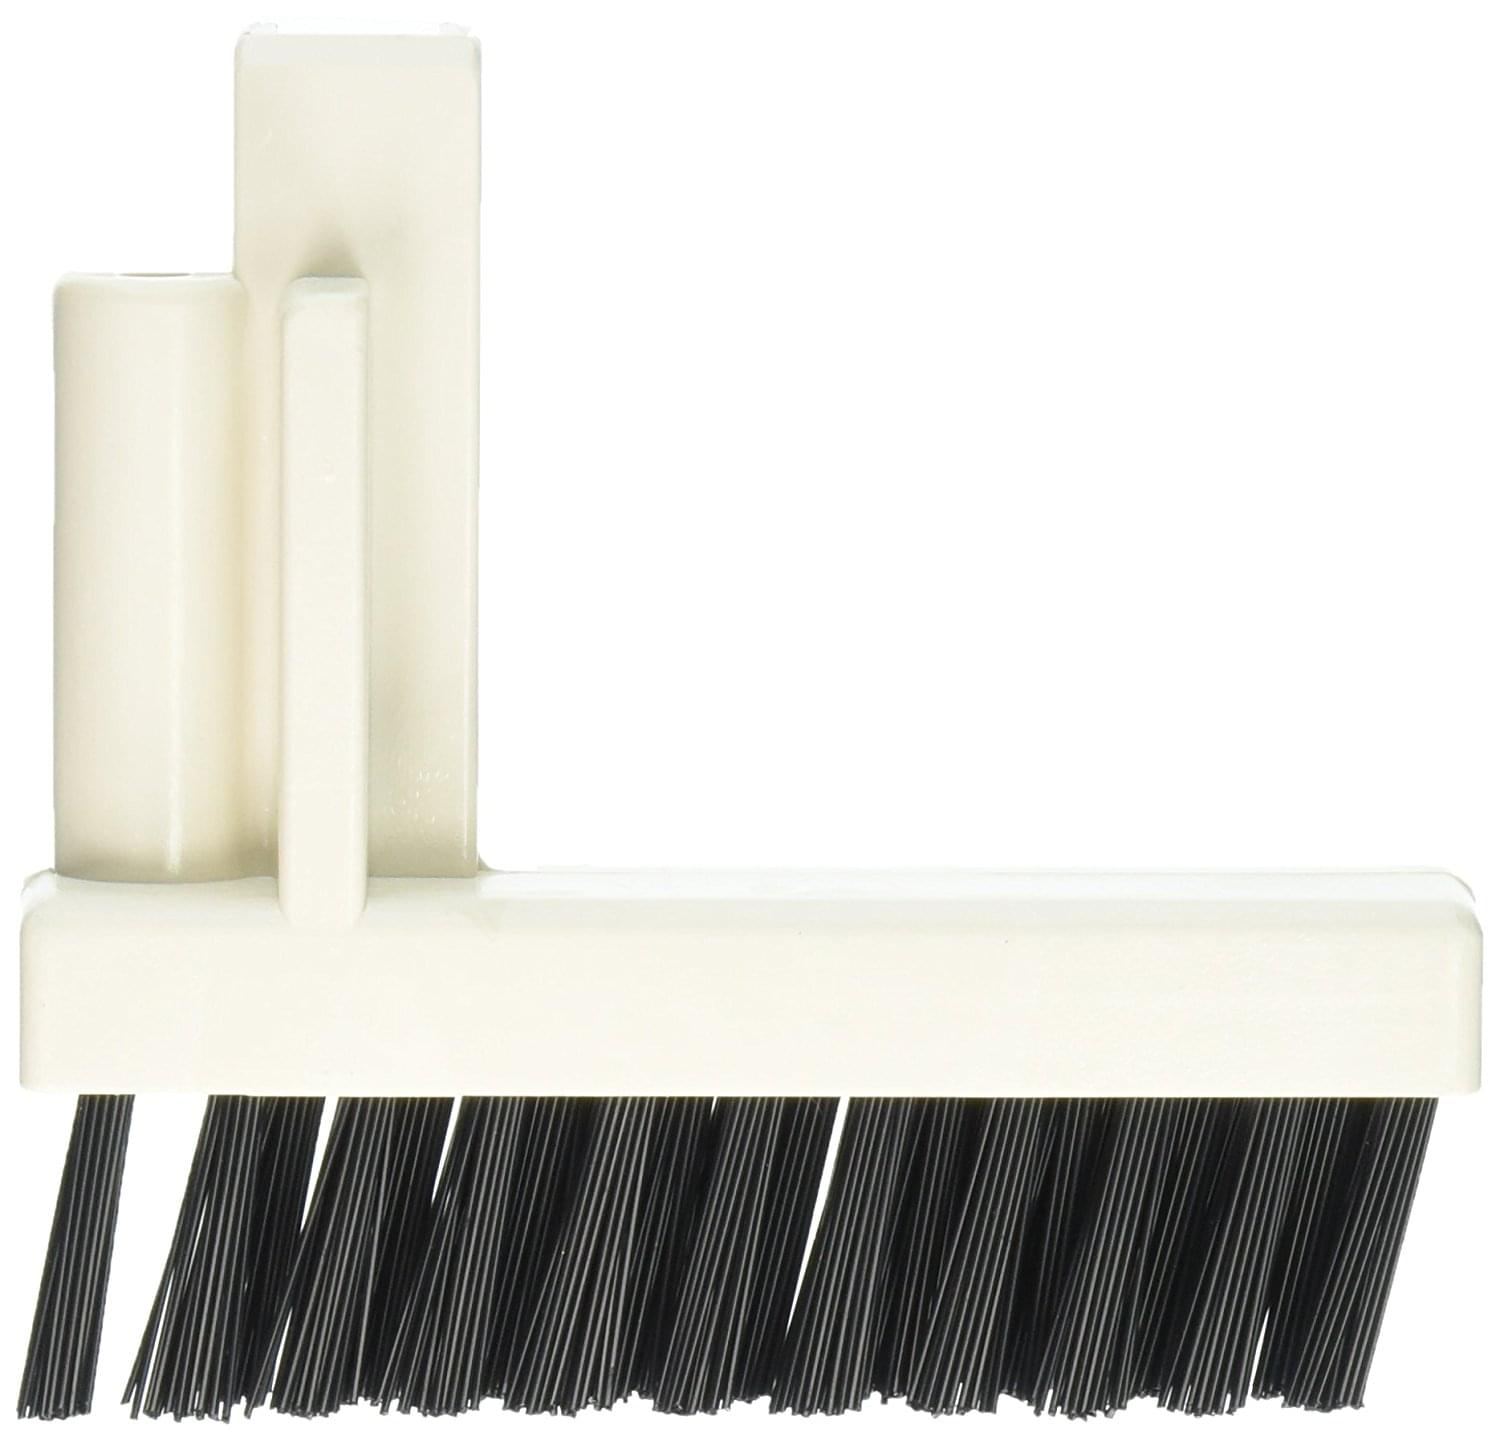 Pentair Gw9517 Lift Brush Pool Supplies Canada